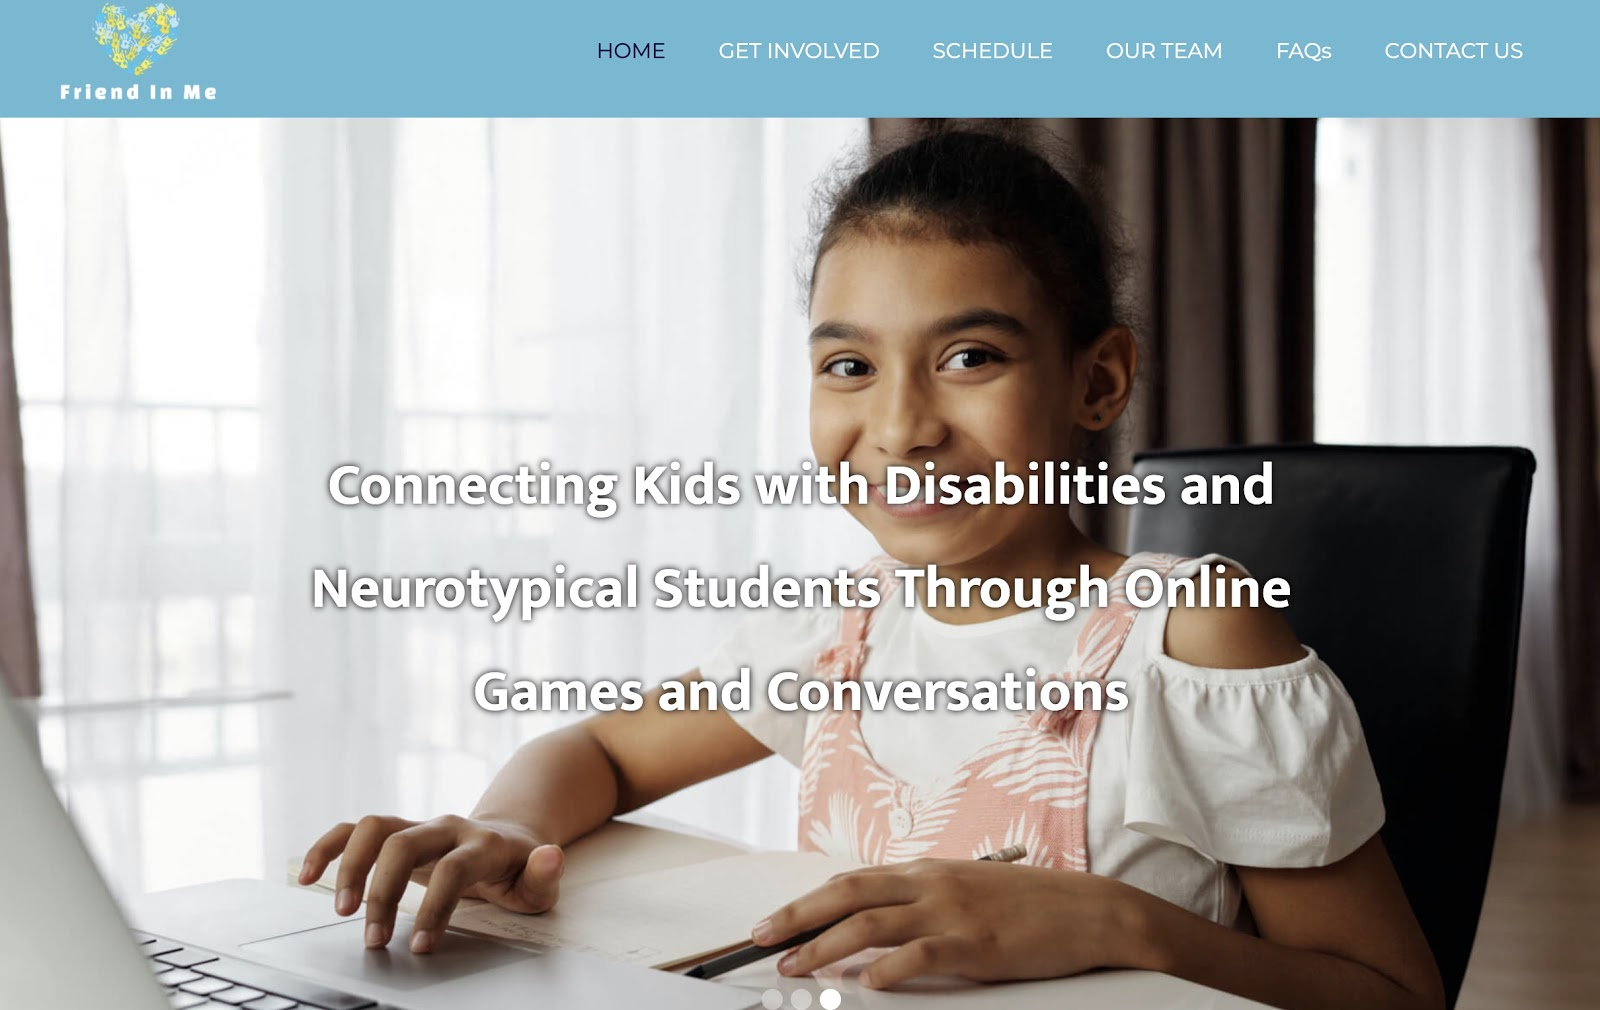 Friend in Me's homepageshowing a child on a computer and text explaining their mission to connect kids with disabilities to neurotypical students through online games and conversation.